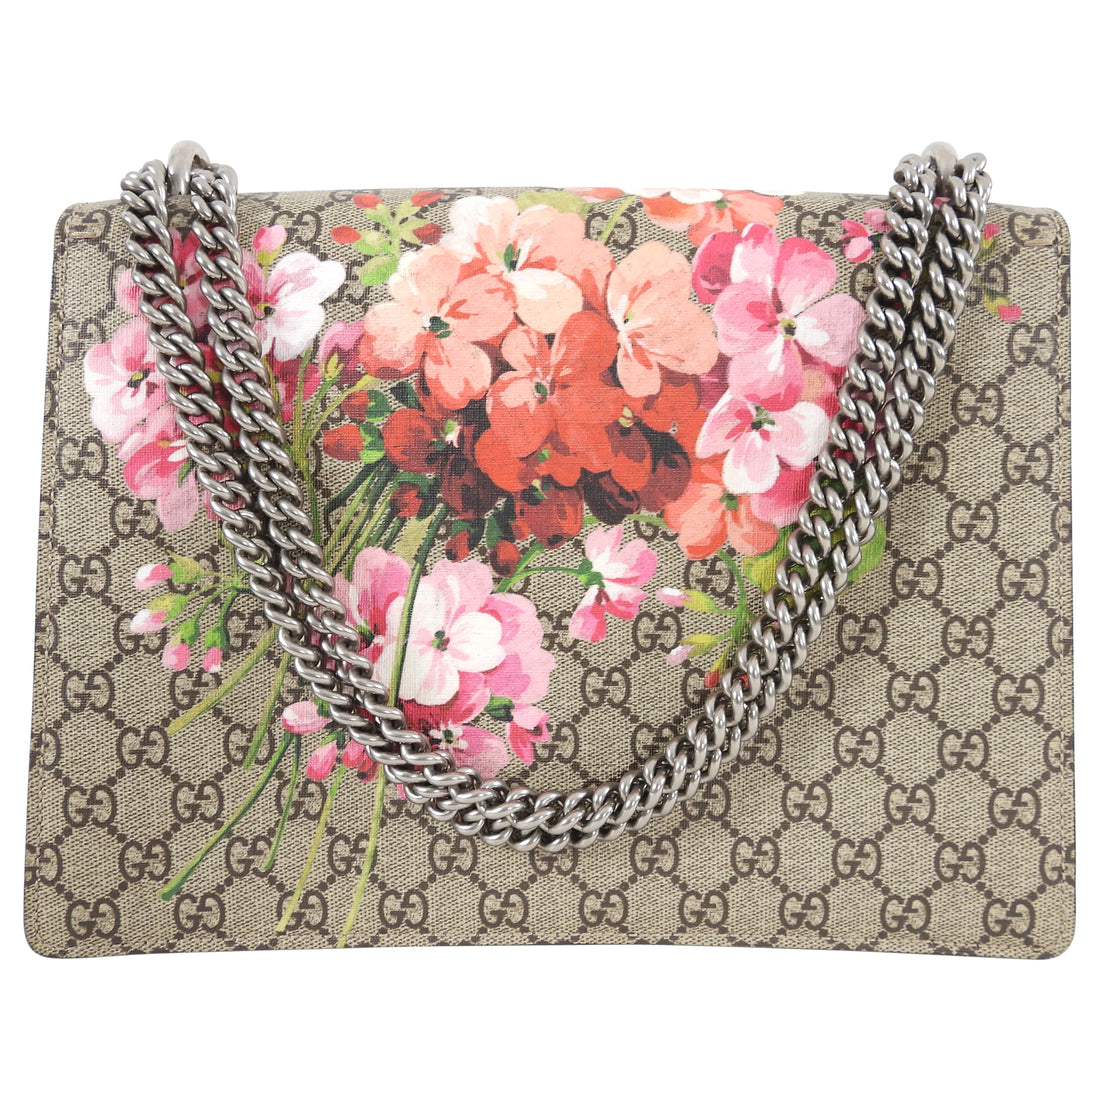 Gucci GG Blooms Dionysus Supreme Medium Pink and Red Bag